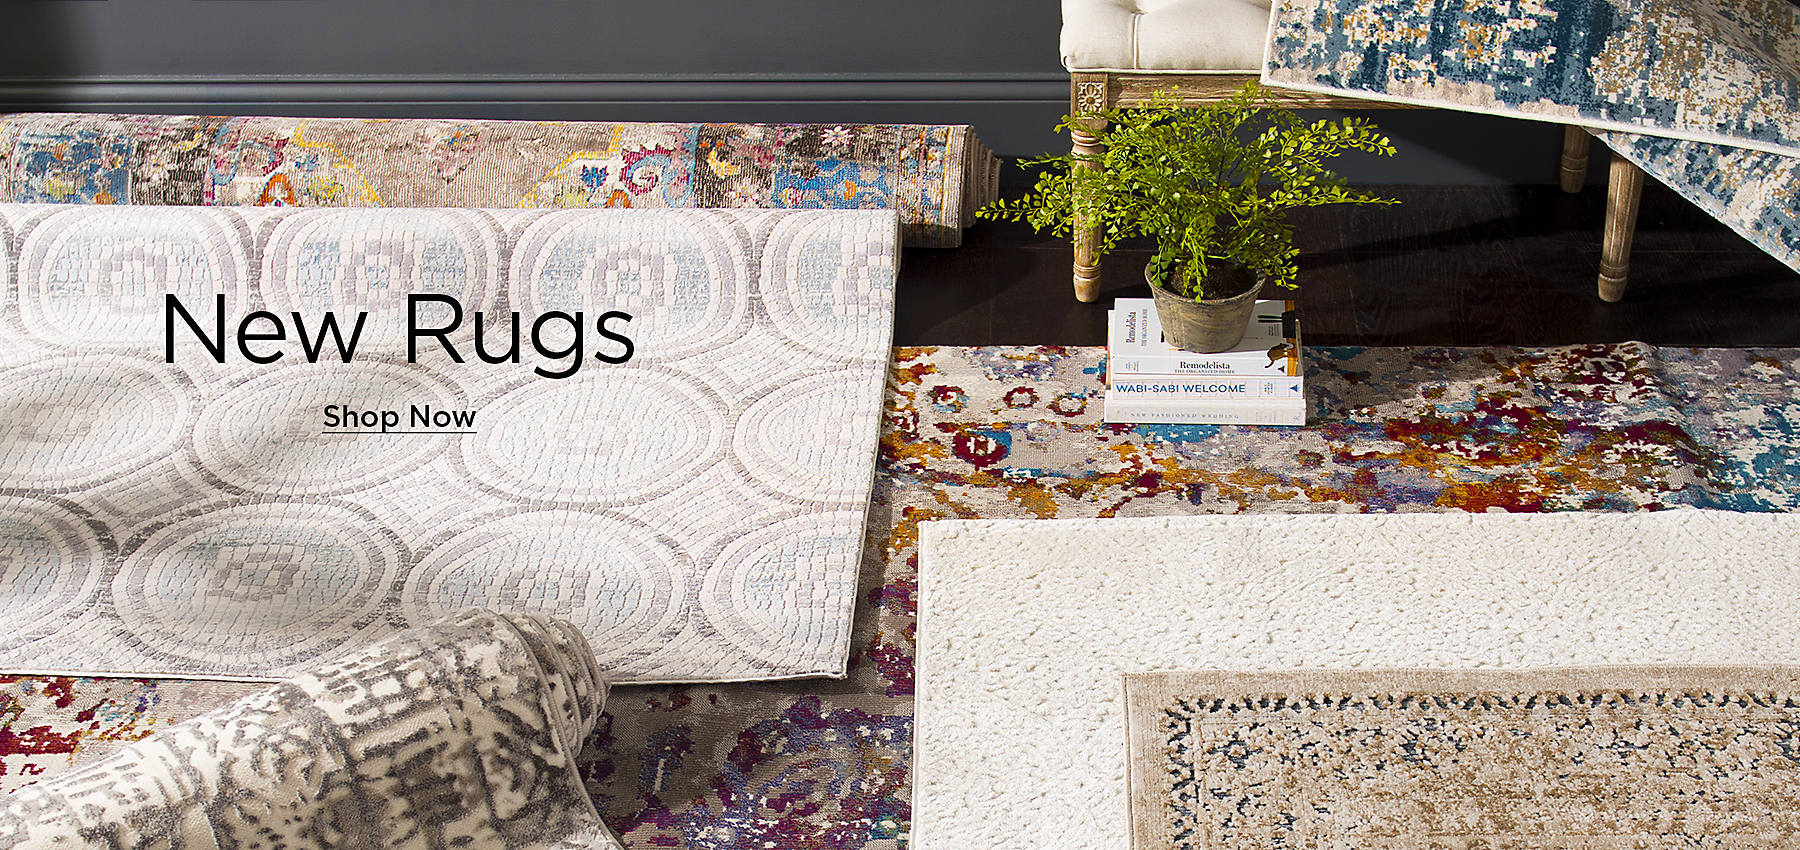 Now Here Rugs